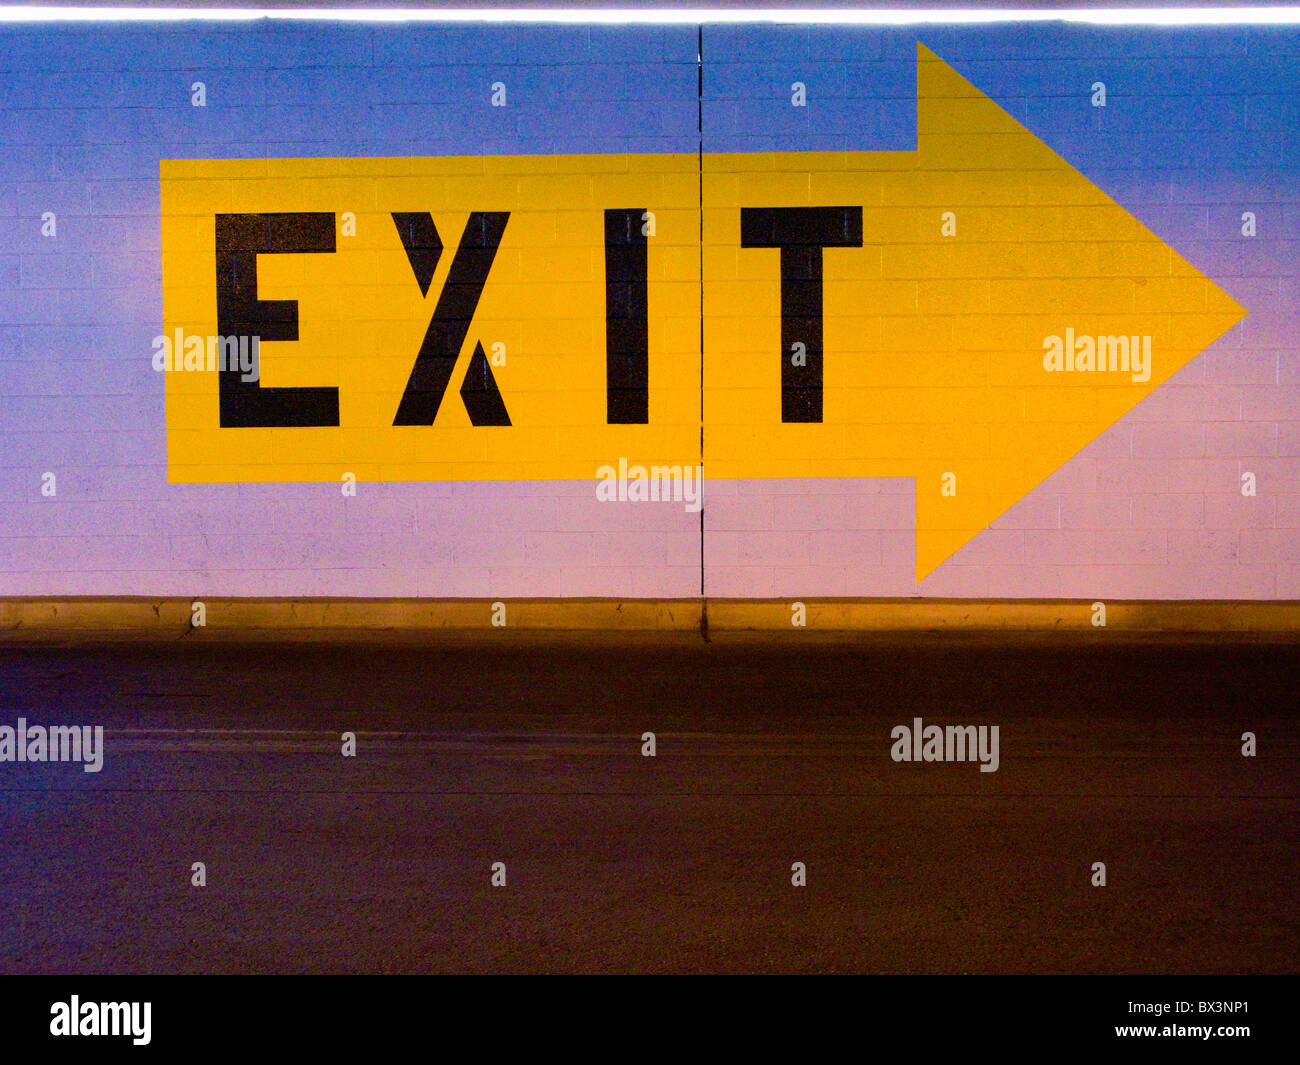 Exit sign in parking garage - Stock Image